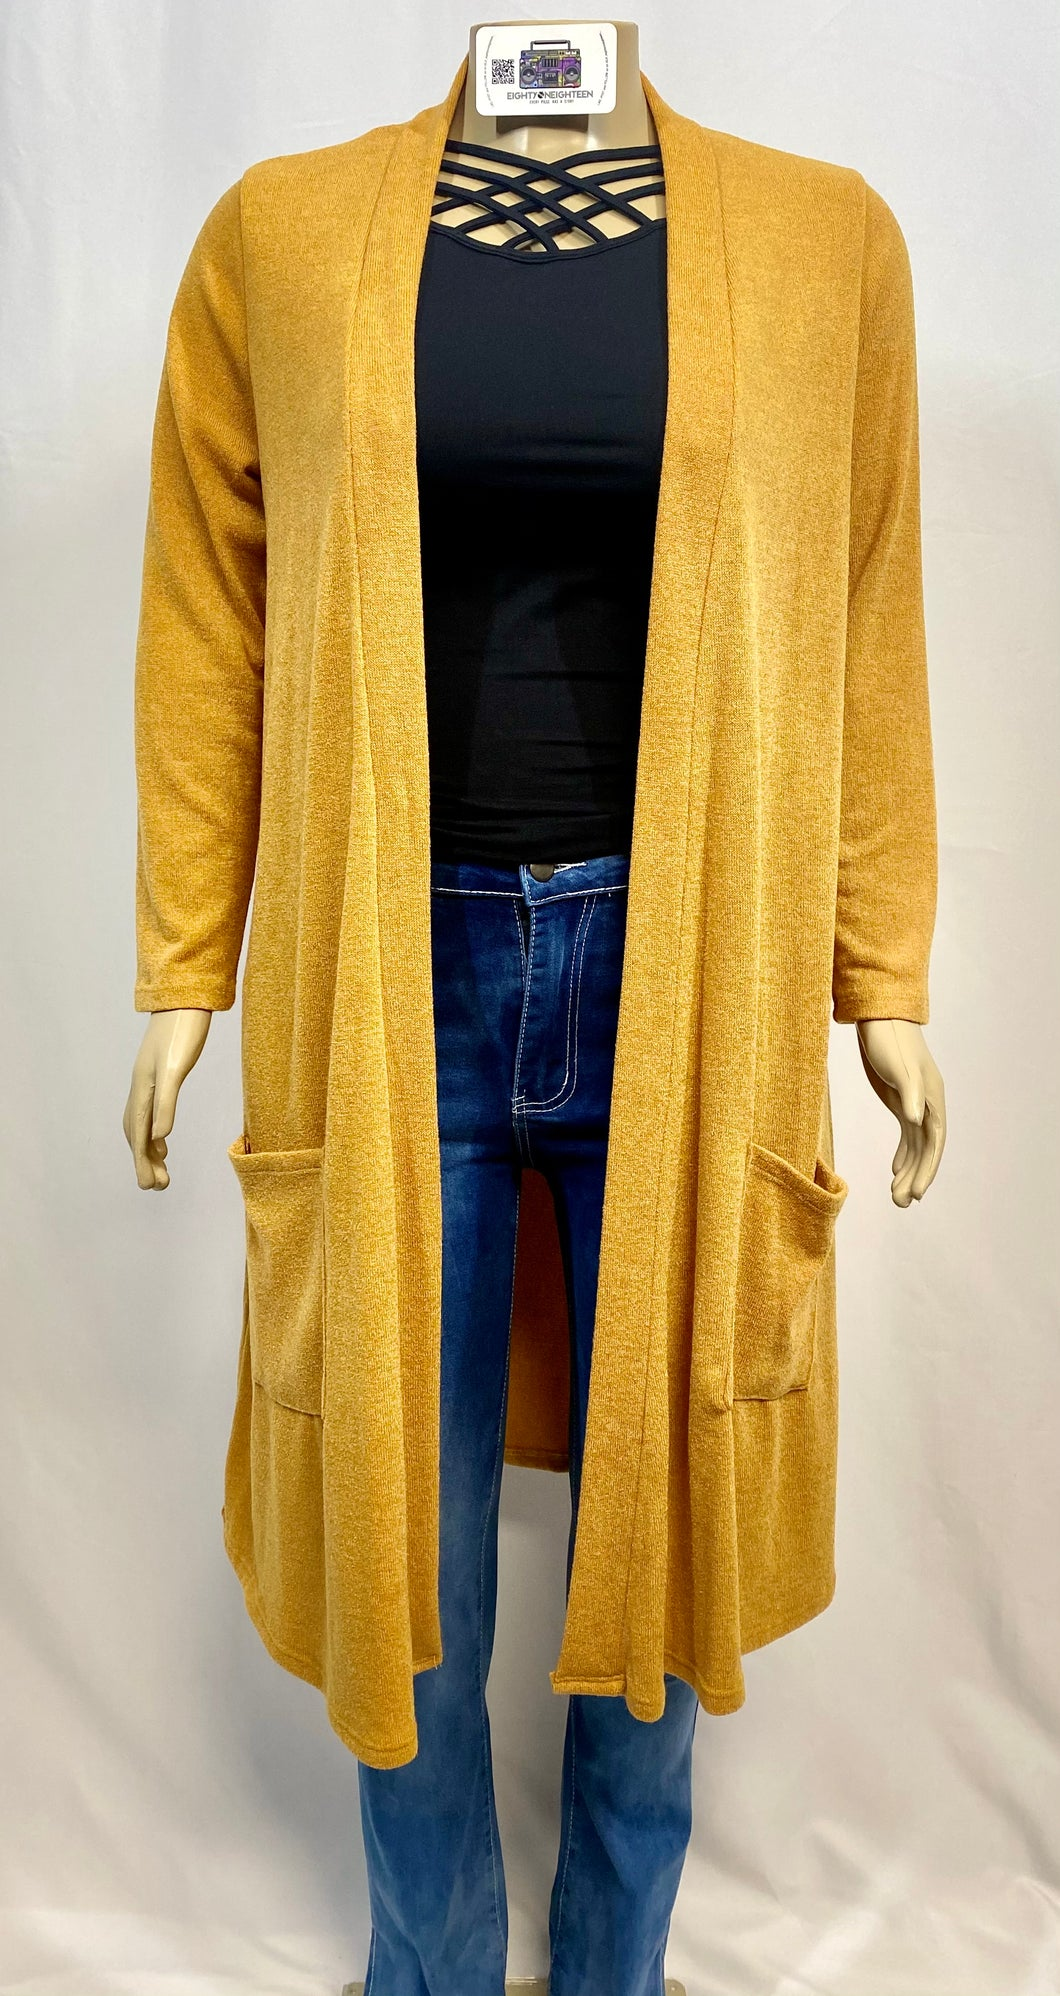 RETRO GOLD CARDIGAN